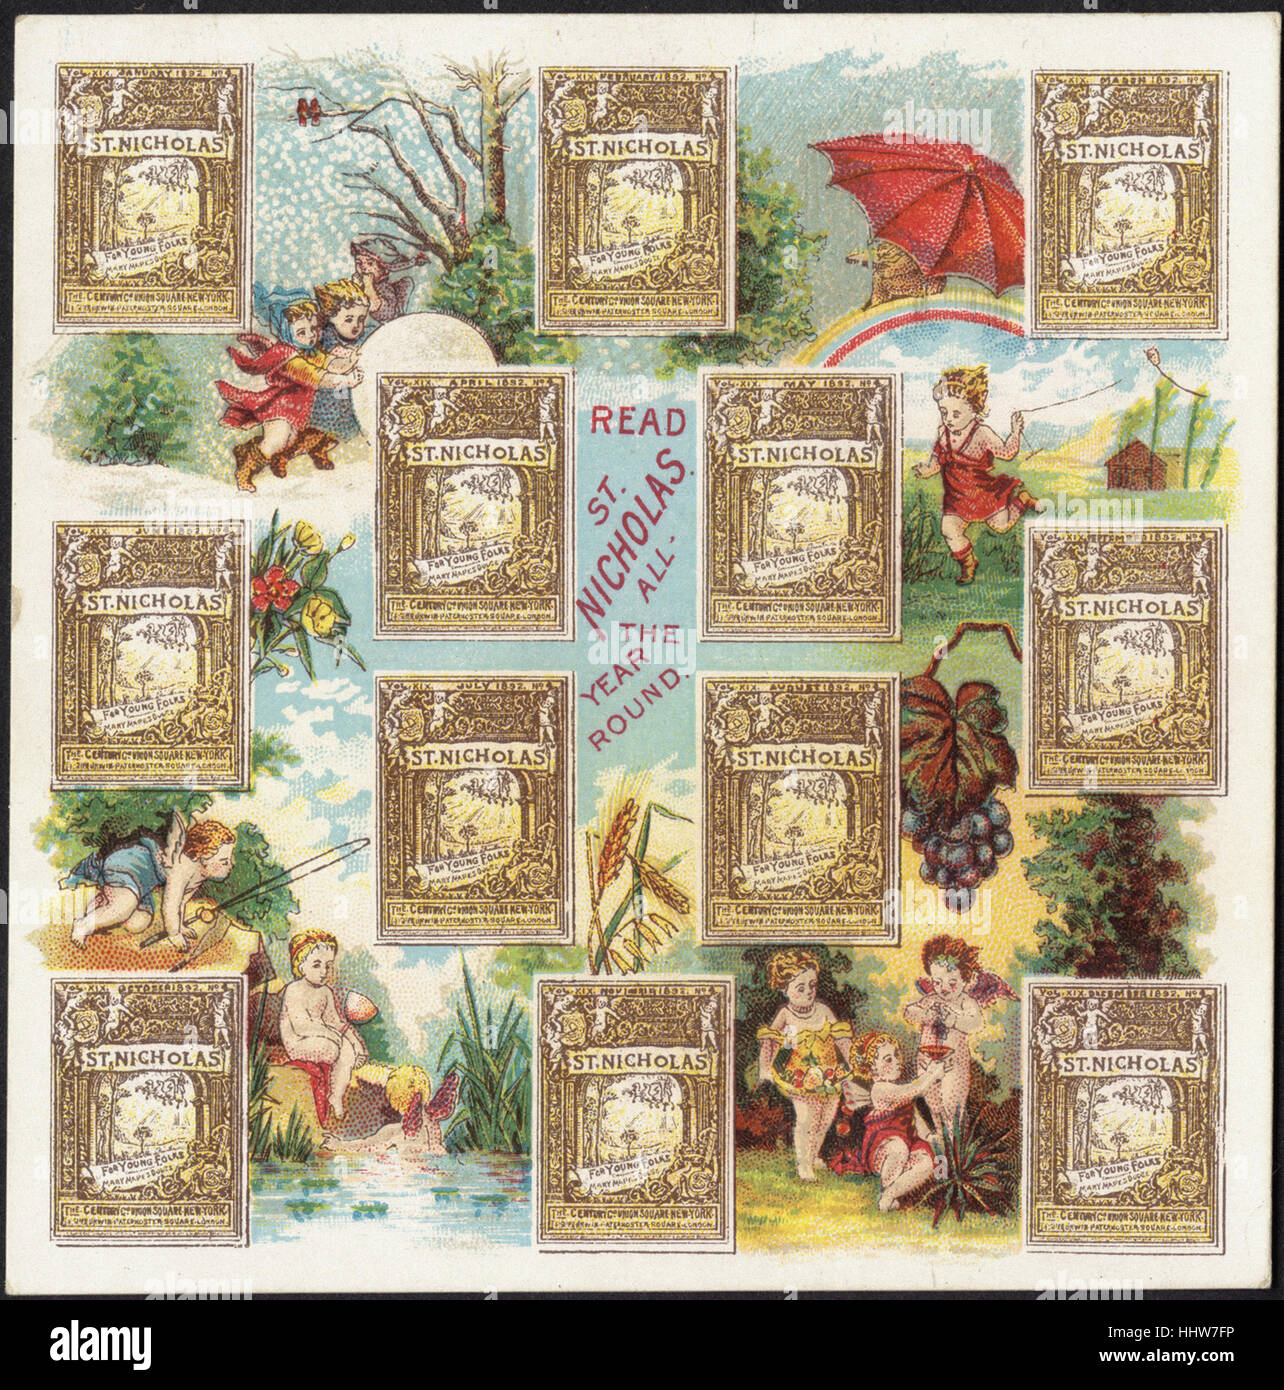 Read St. Nicholas all the year round. [front]  - Leisure, Reading, and Travel Trade Cards - Stock Image